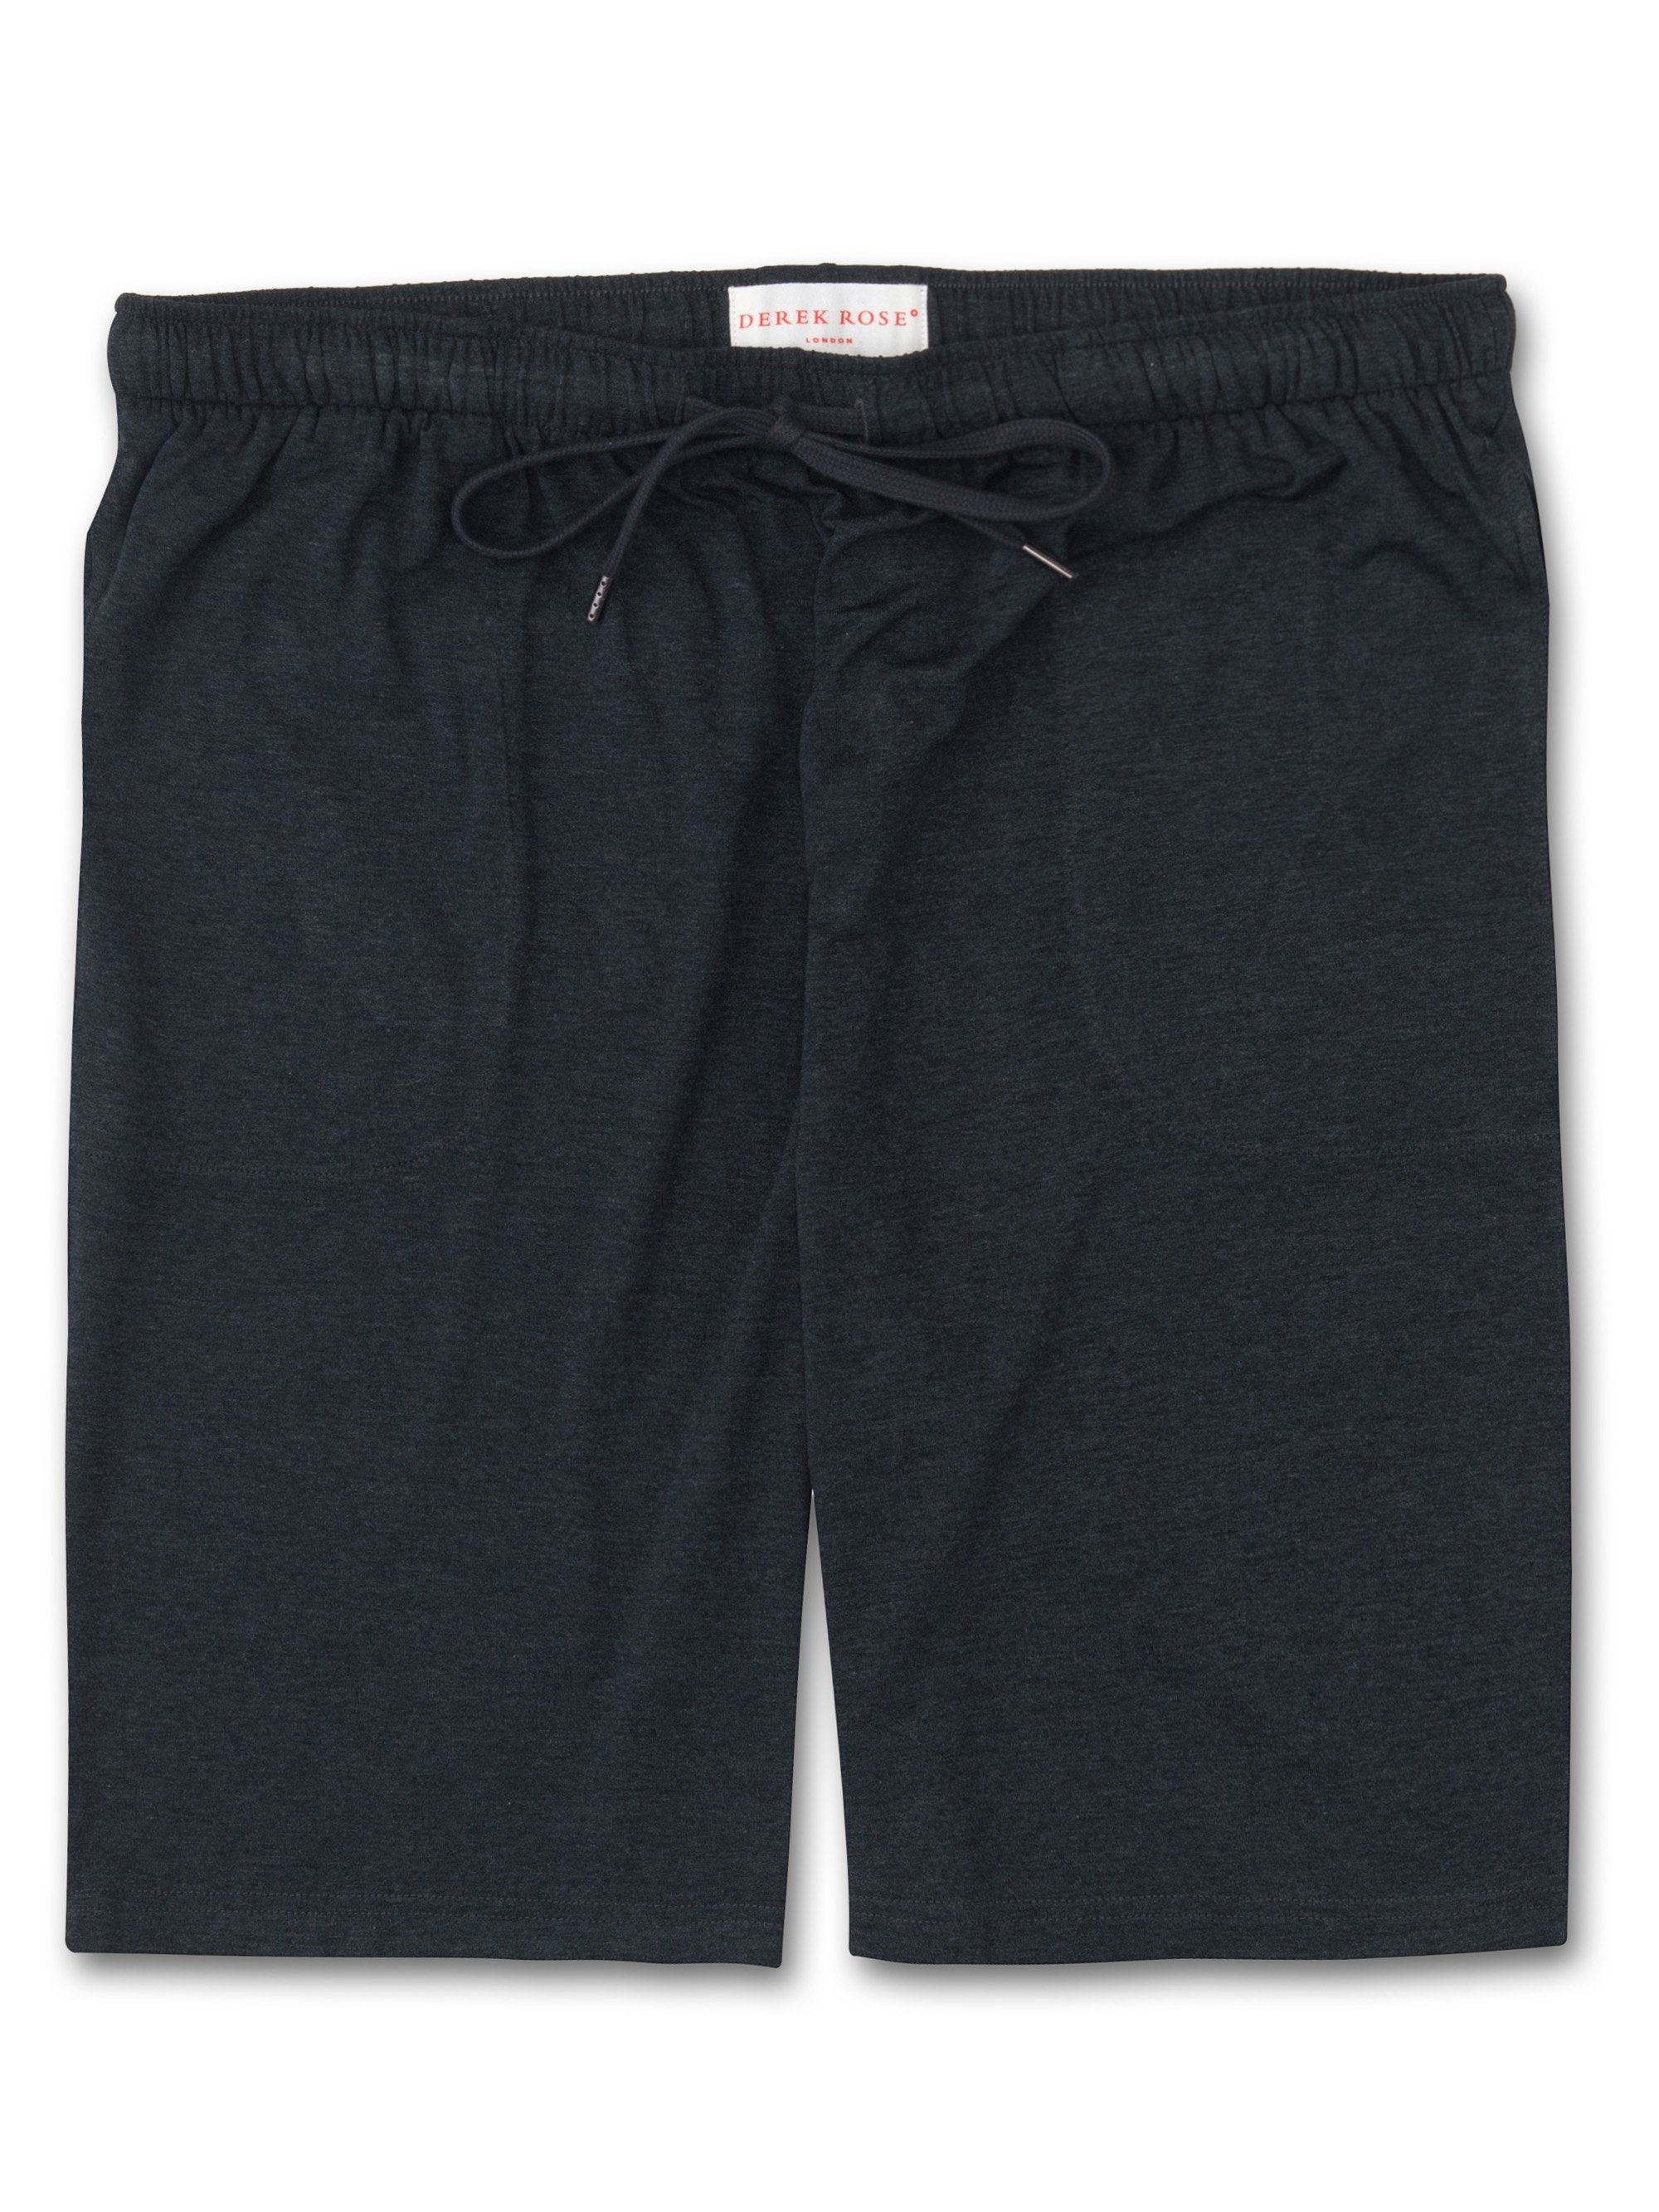 Men's Jersey Shorts Marlowe Micro Modal Stretch Anthracite